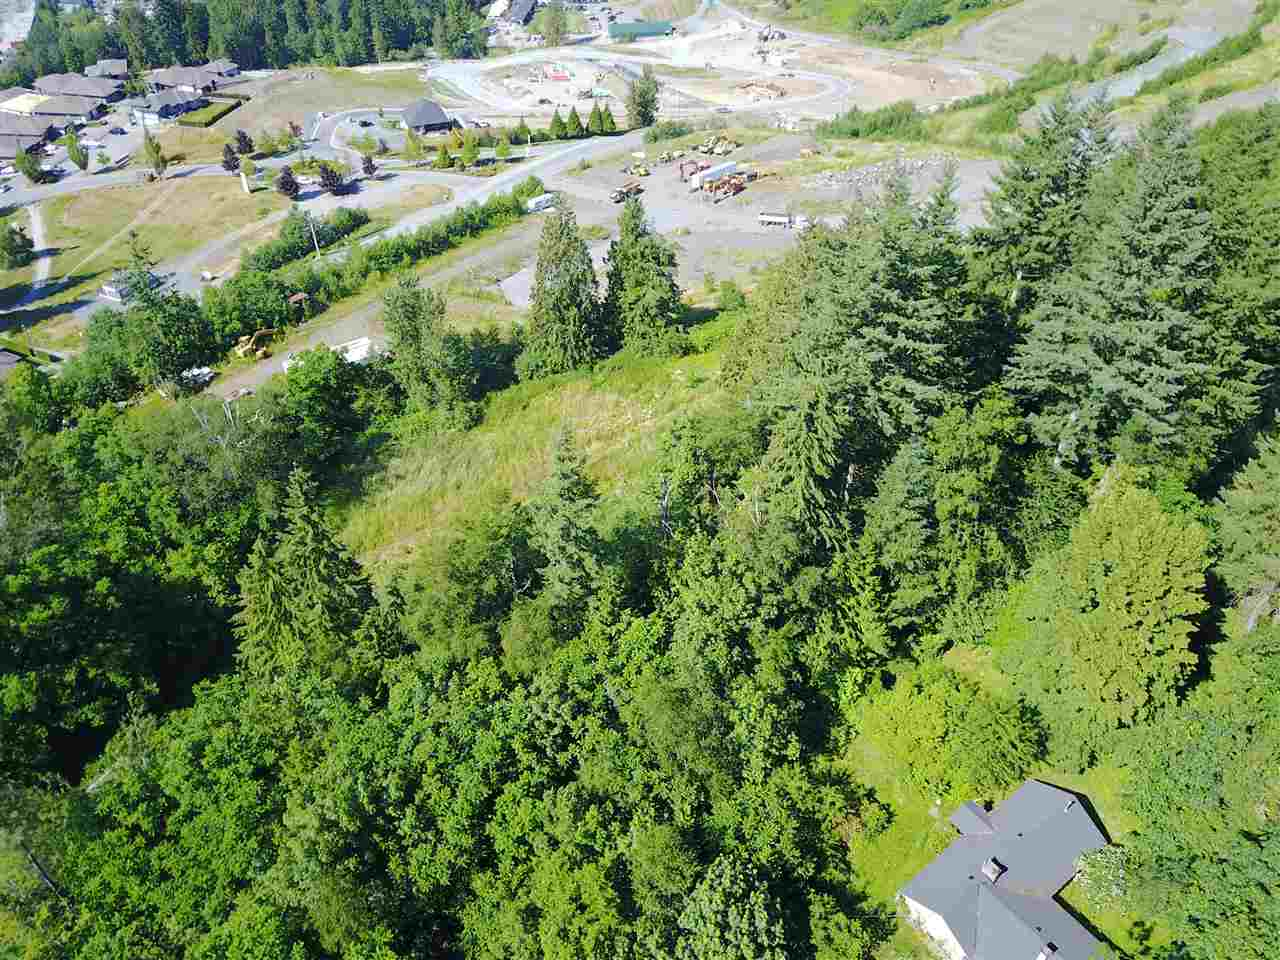 Rare opportunity to purchase a 19.77 acre development/holding property right beside the Falls golf course and the Aquilini group residential development. This property has multiple benches for development, in the Chilliwack OCP for residential and it has sewer and water within 75 meters of the property line. There is a 1600 sqft home on the property so this would also make a great holding property for the future. Give me a call for further info.